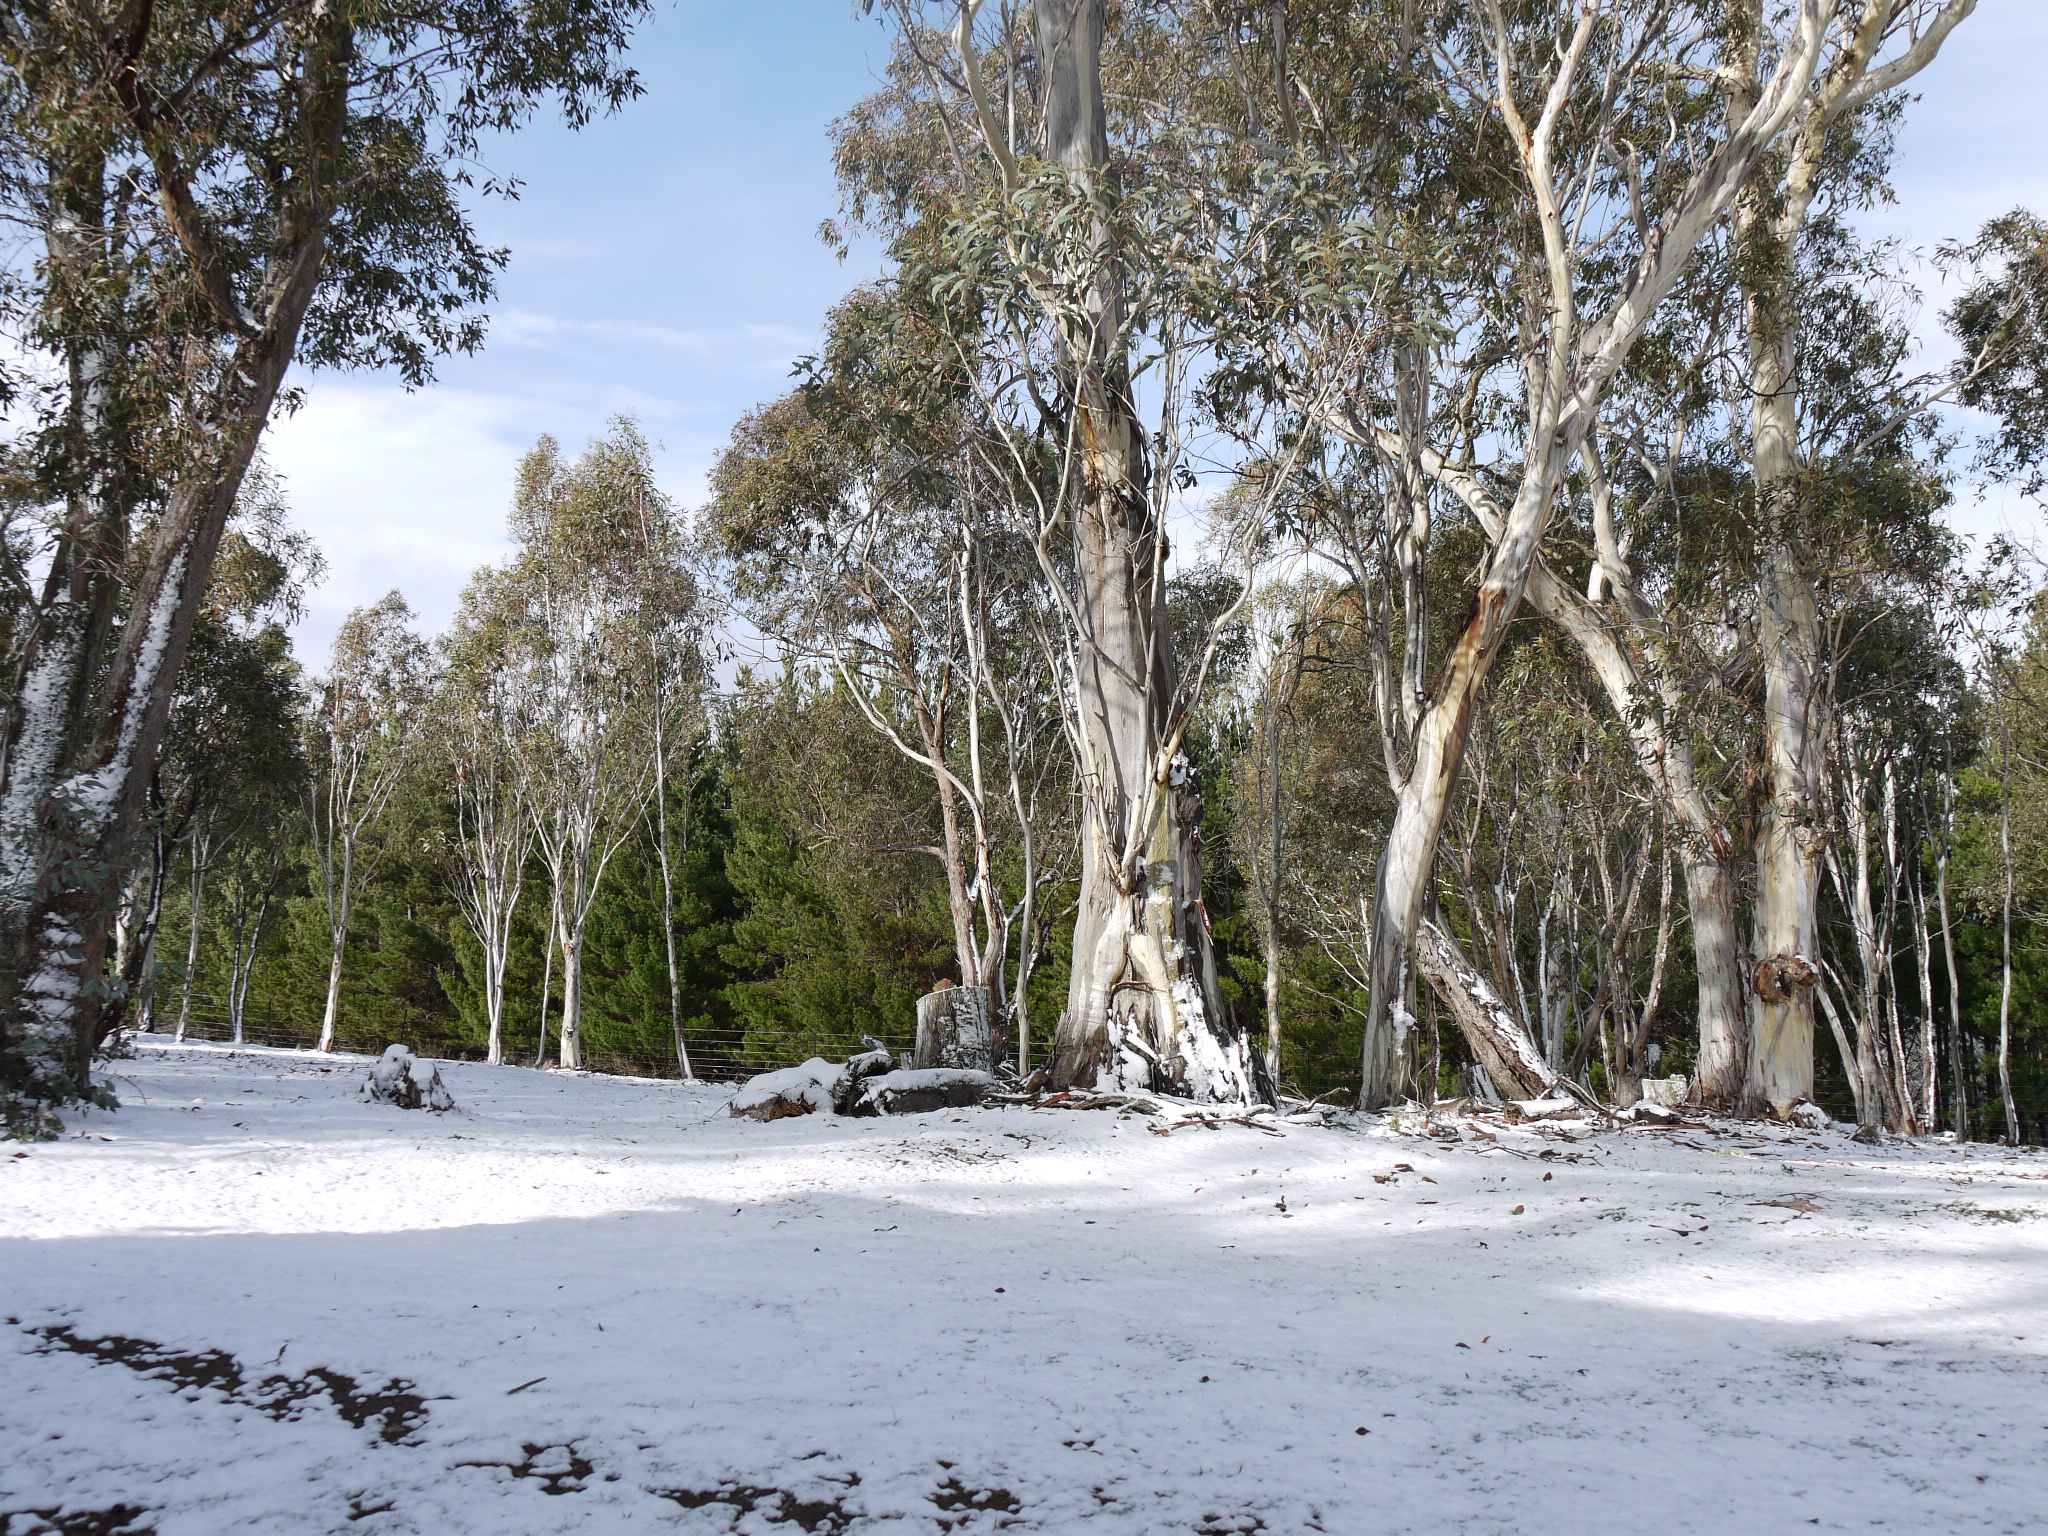 White Sally Snow Gums